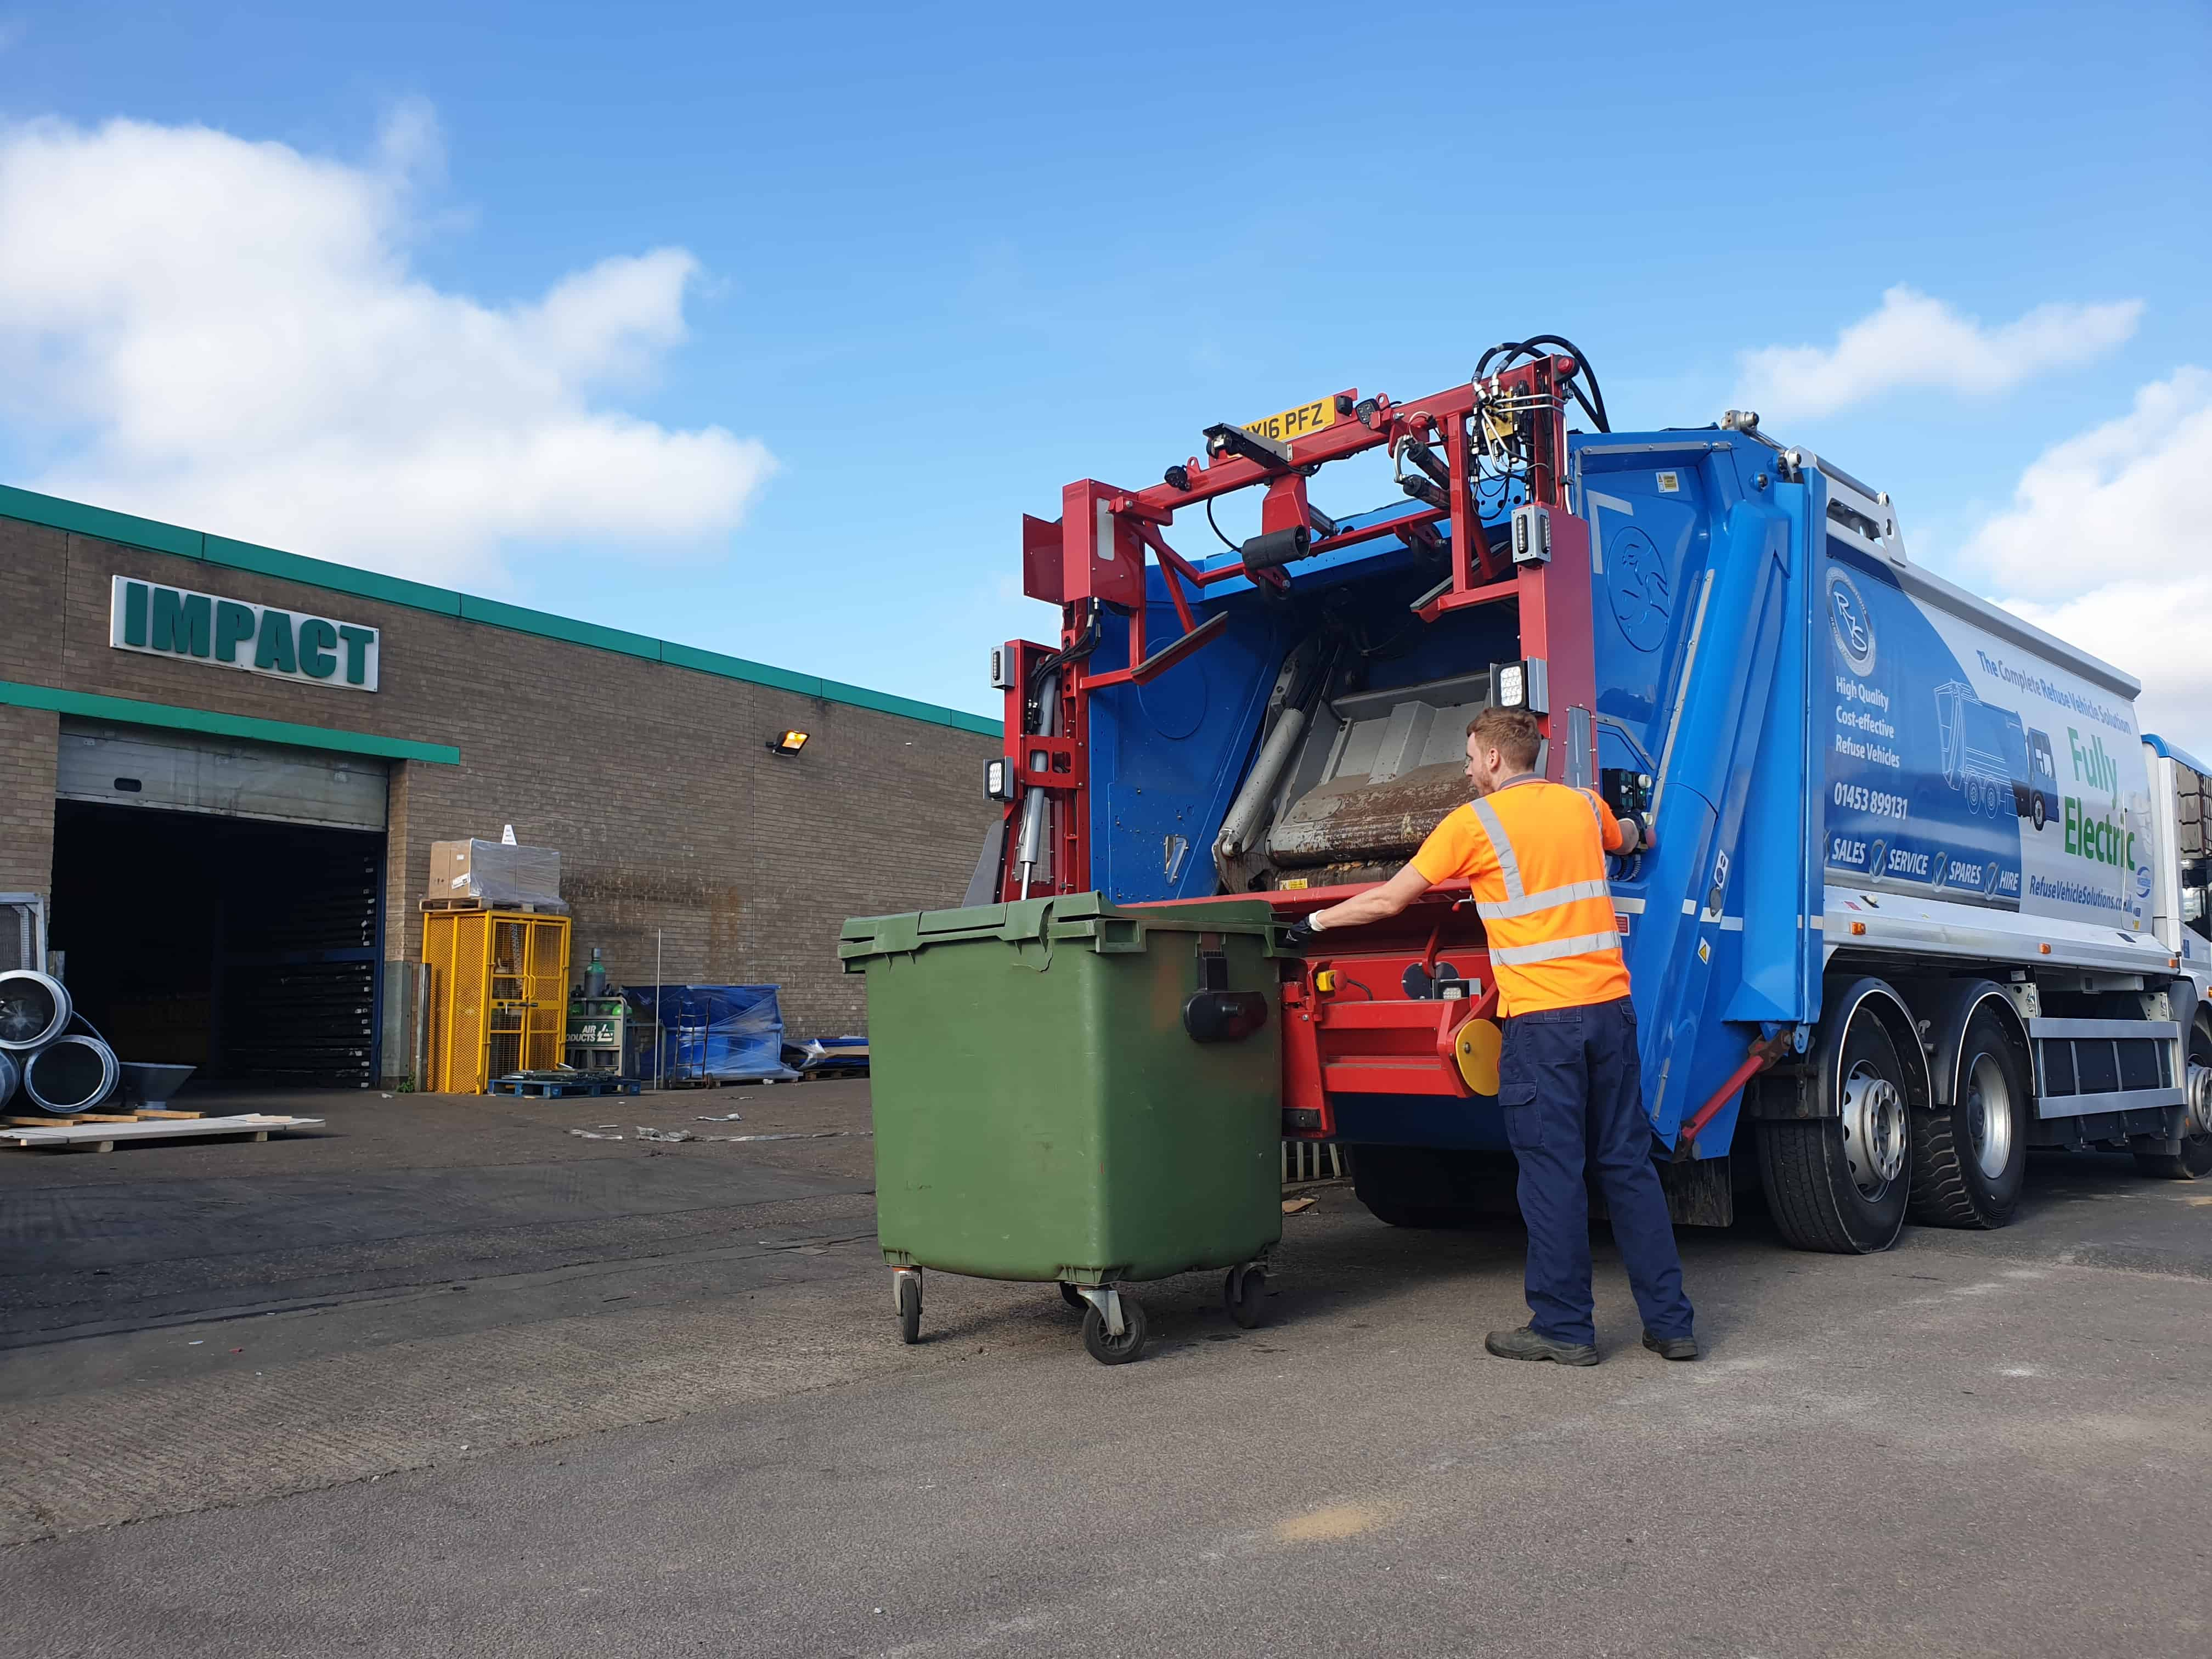 Electric refuse vehicle collecting at customers